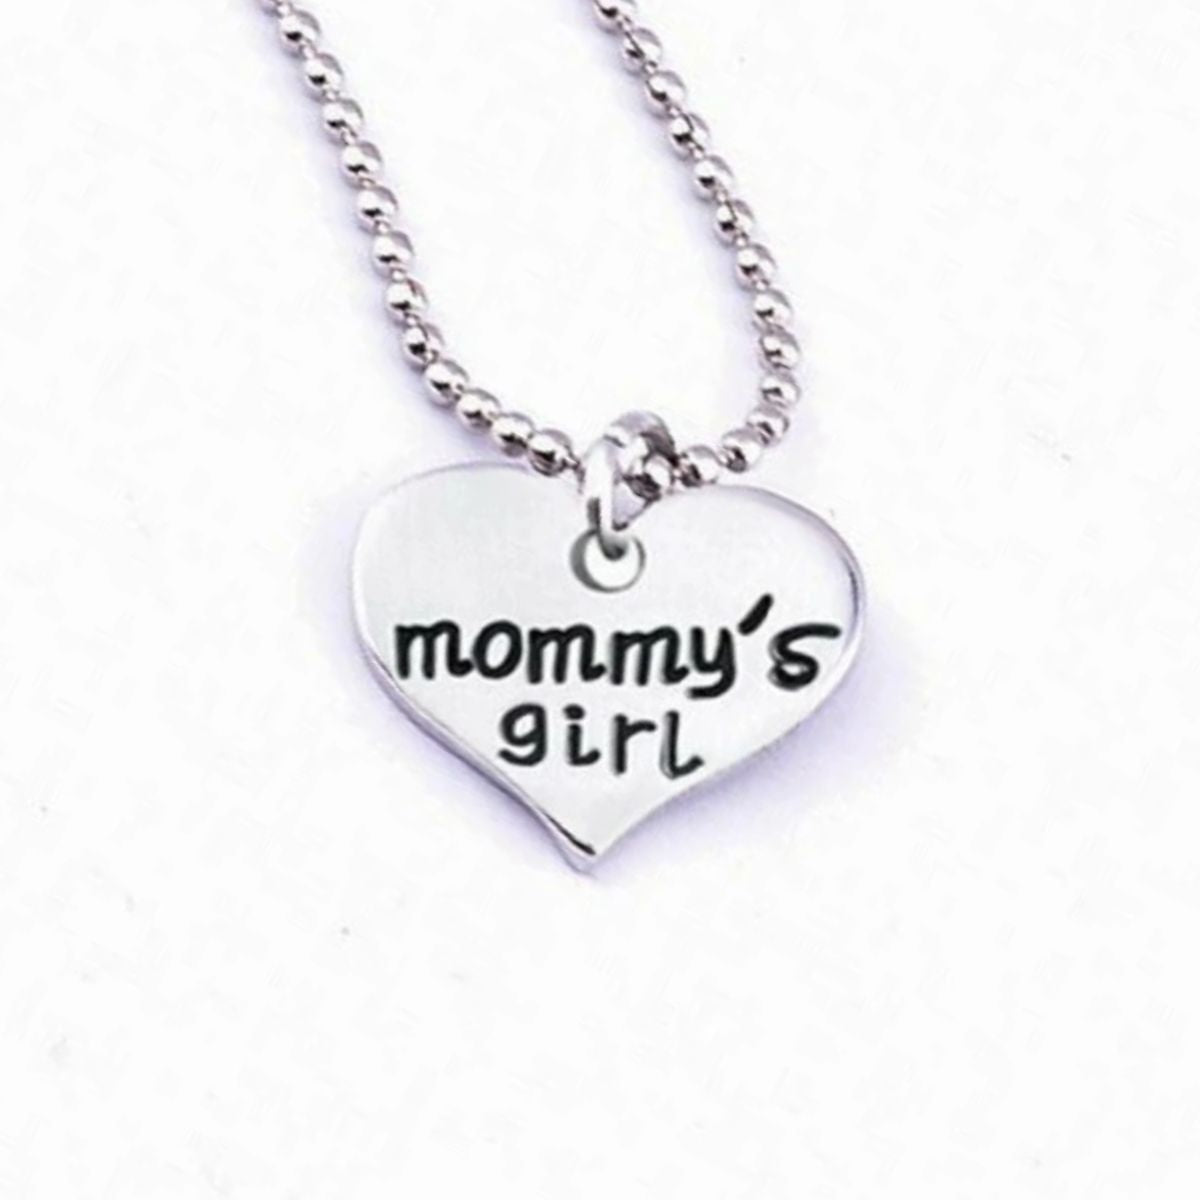 Mommy's Girl Necklace (FREE SHIPPING!)